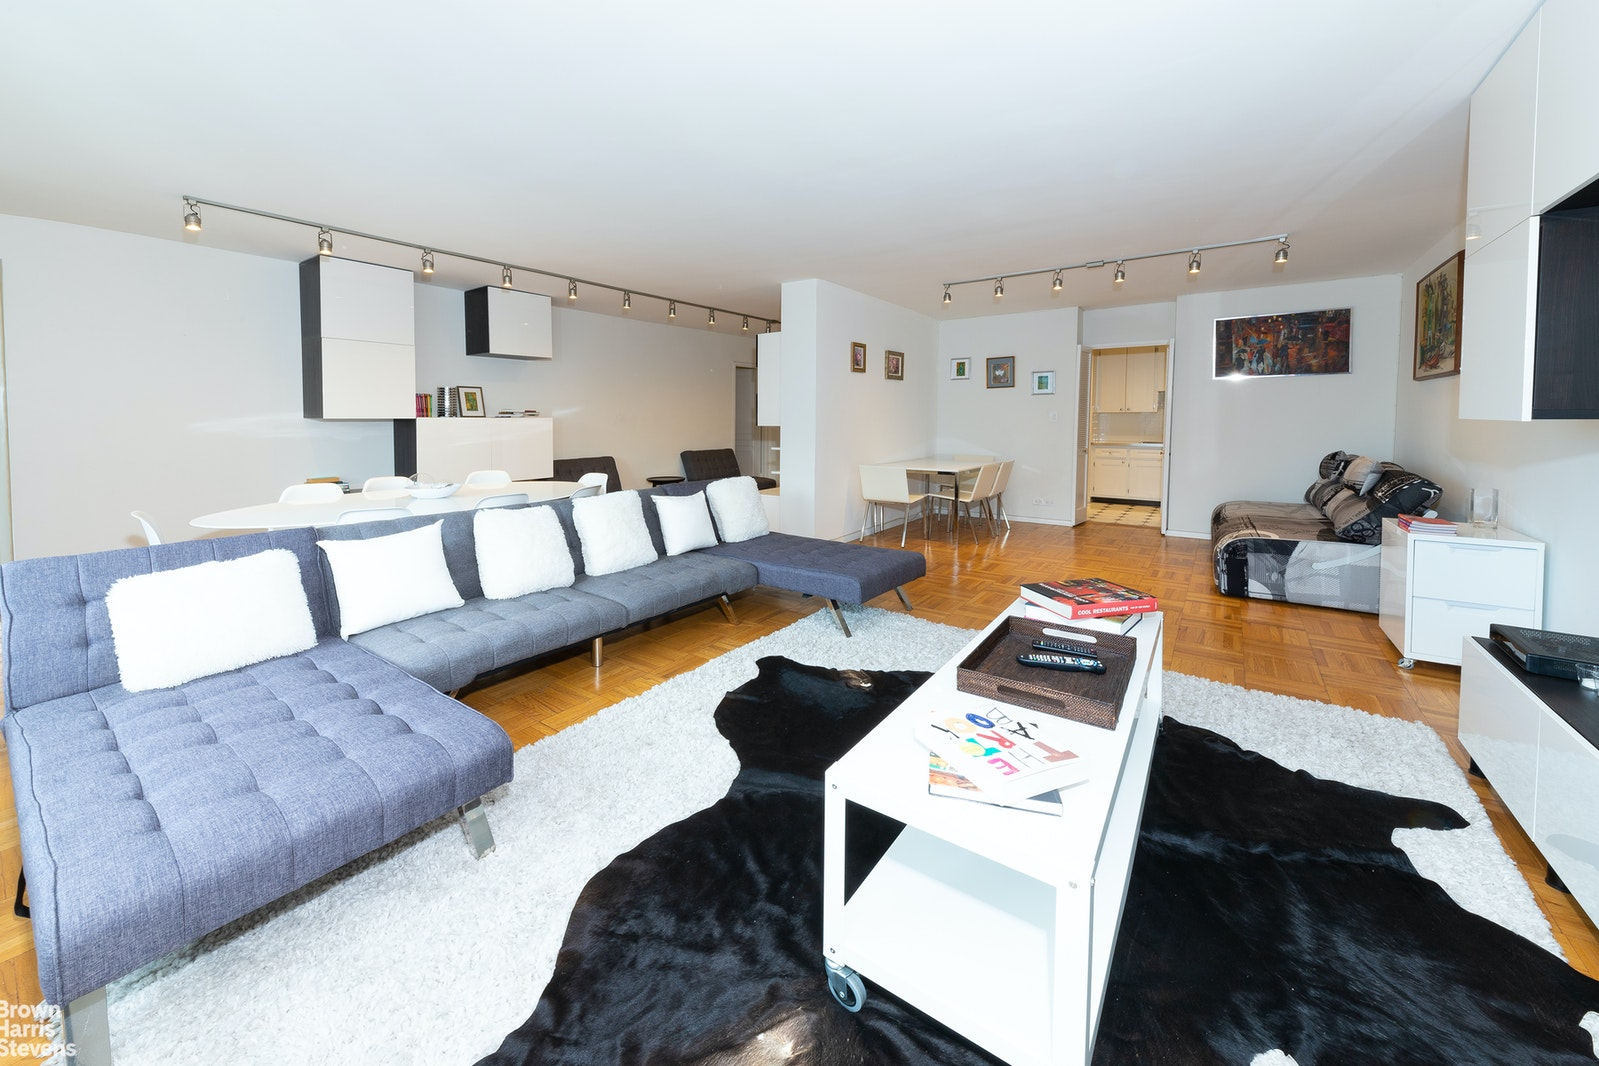 303 East 57th Street 24e, Midtown East, NYC, 10022, $495,000, Property For Sale, Halstead Real Estate, Photo 4